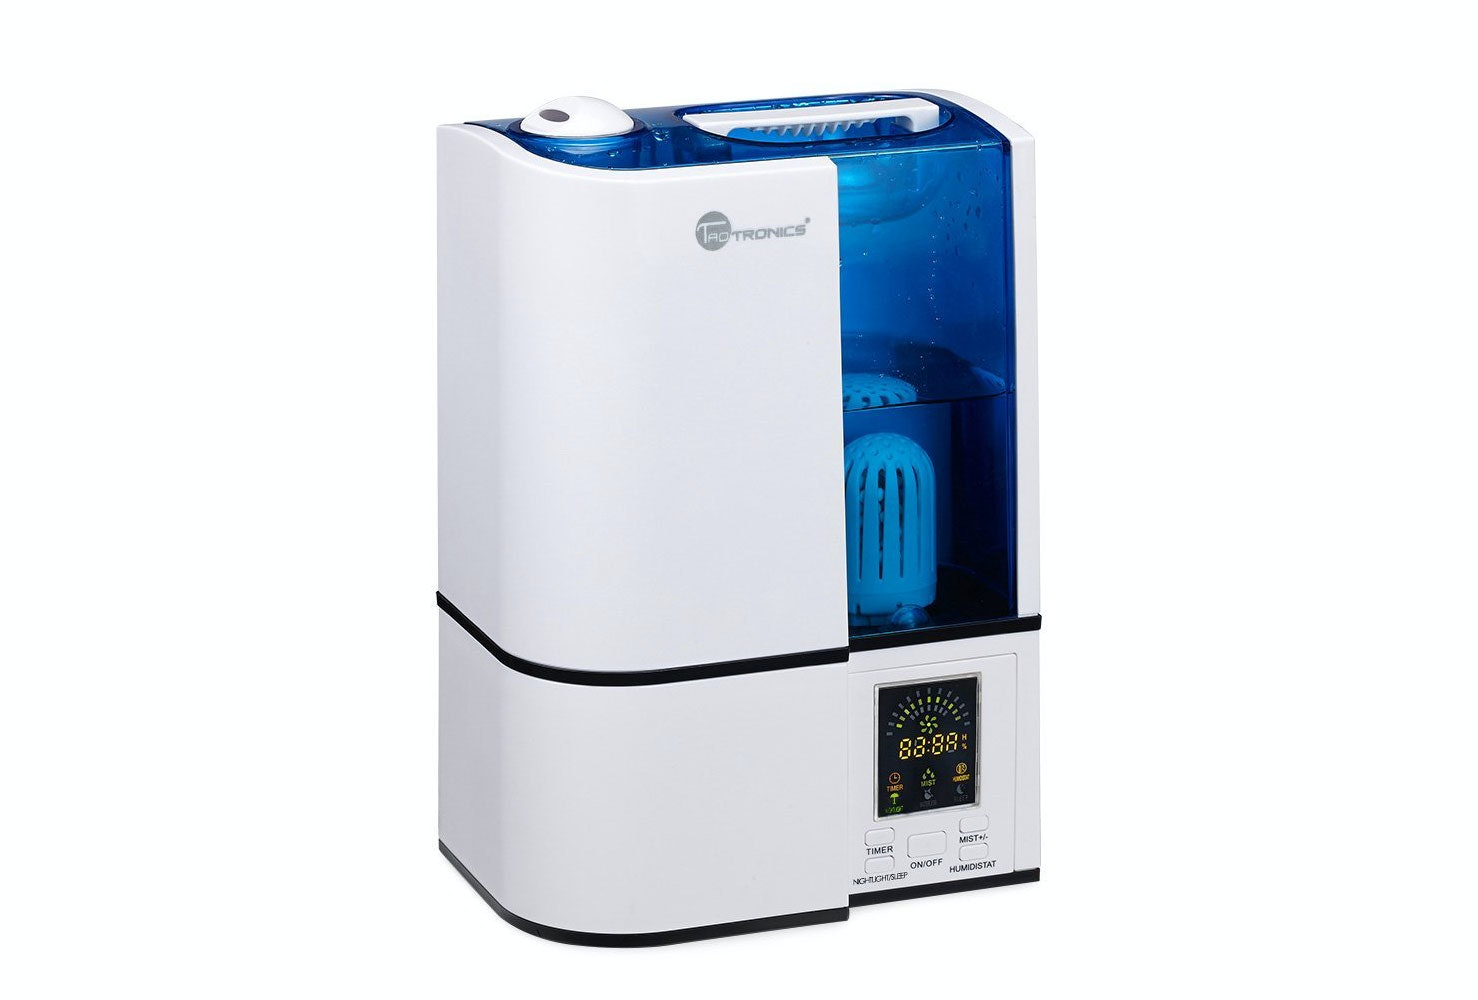 How to use safety first cool mist humidifier